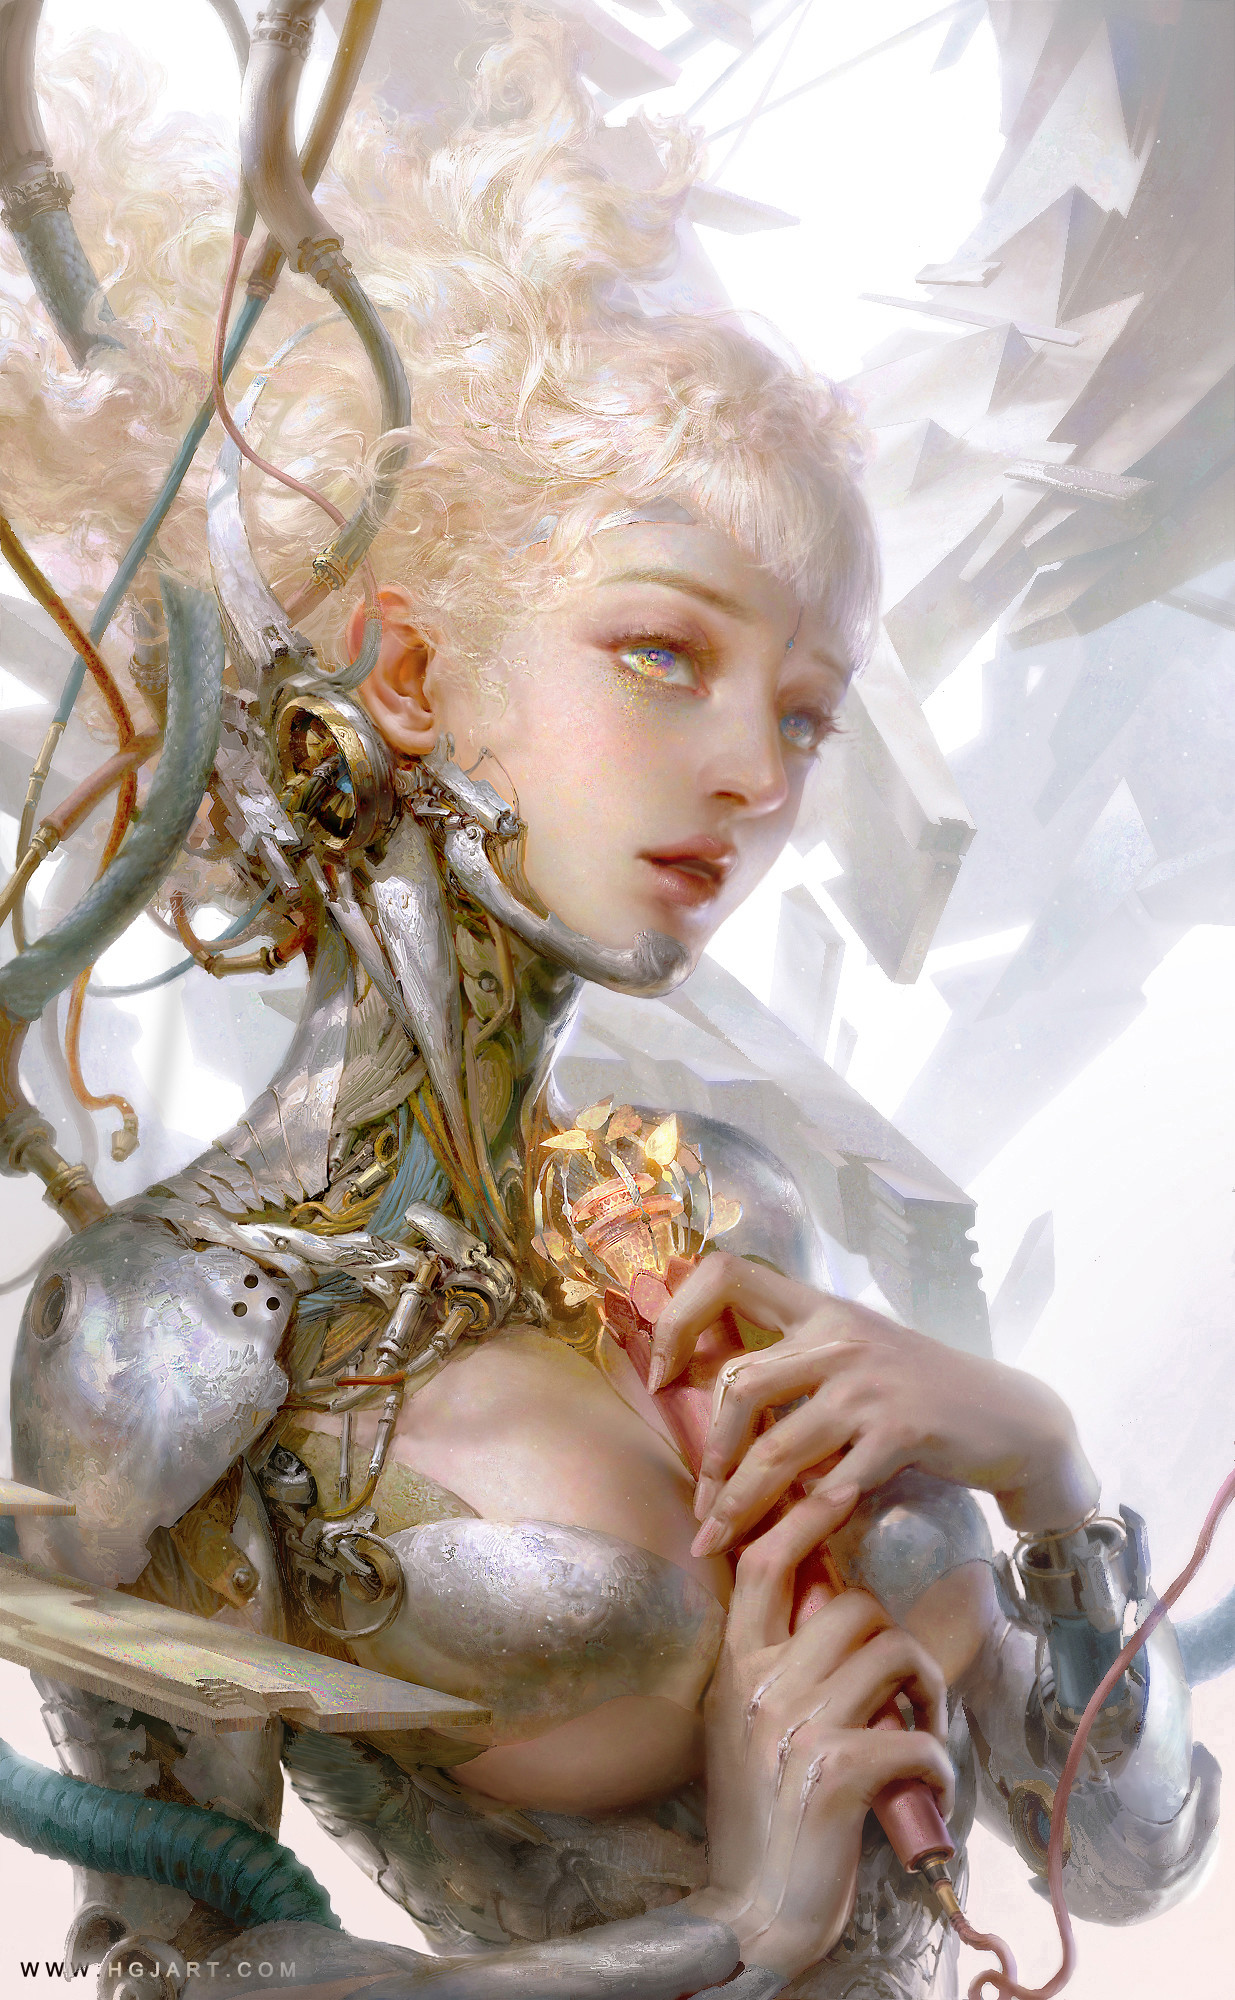 The Gorgeous Fantasy Paintings of Huang Guangjian